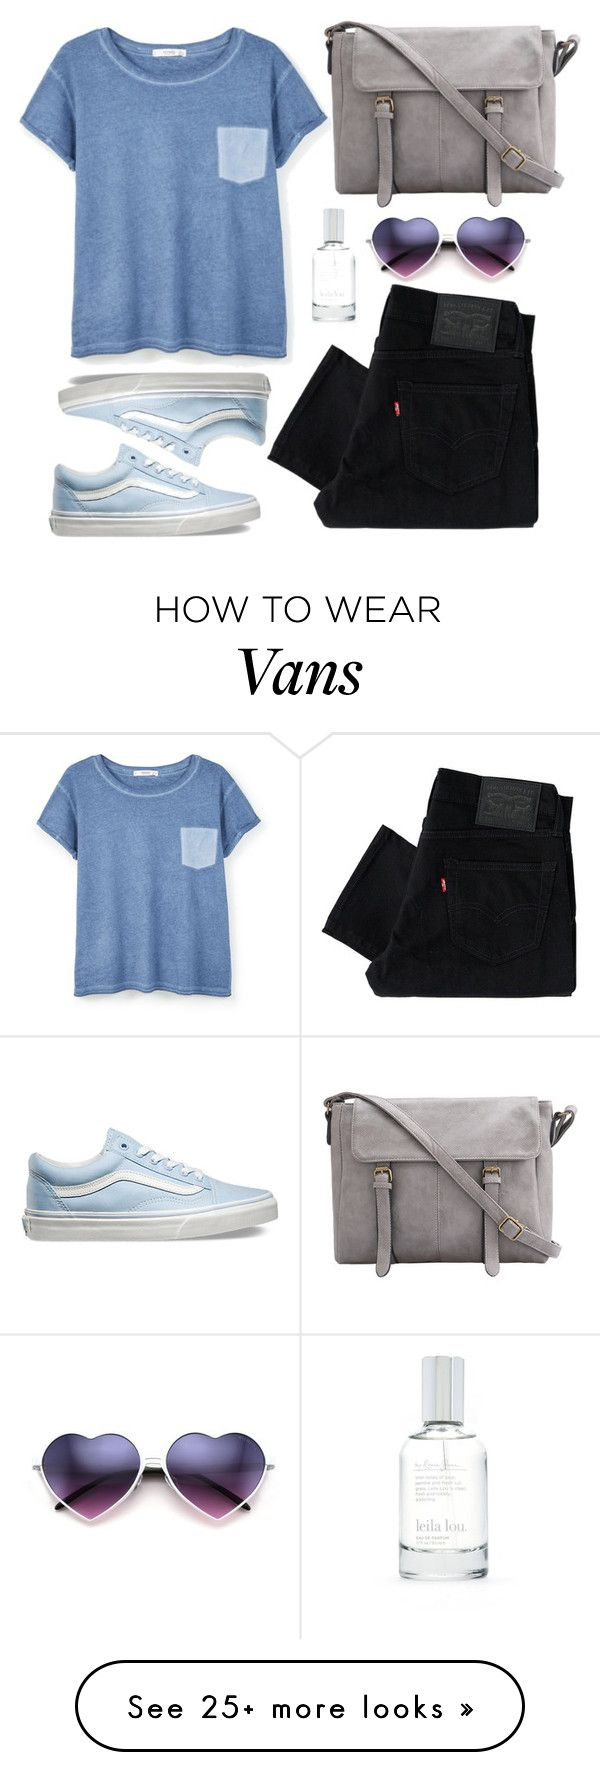 """gray-and-blue"" by microl on Polyvore featuring Levi's, MANGO, Vans and Splendid"